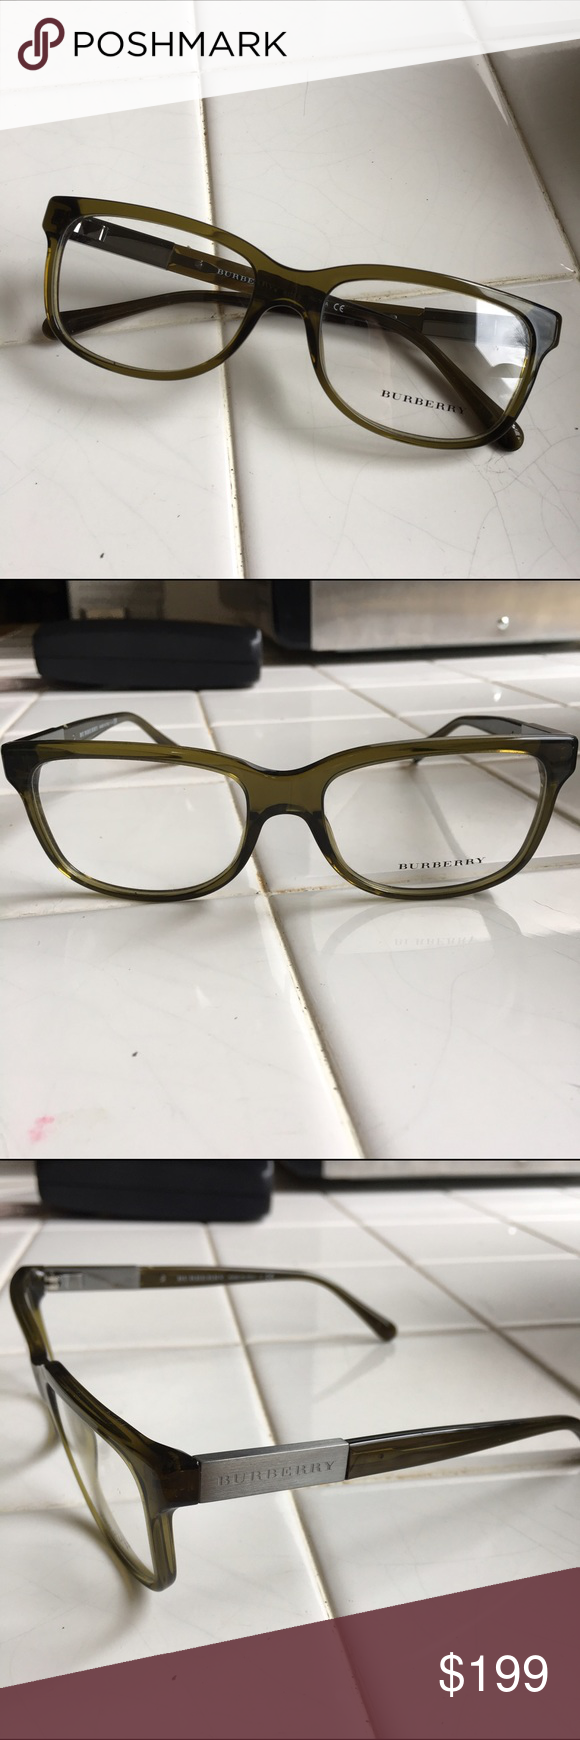 Authentic Burberry eyeglass frames NWT | Metal accents, Green colors ...